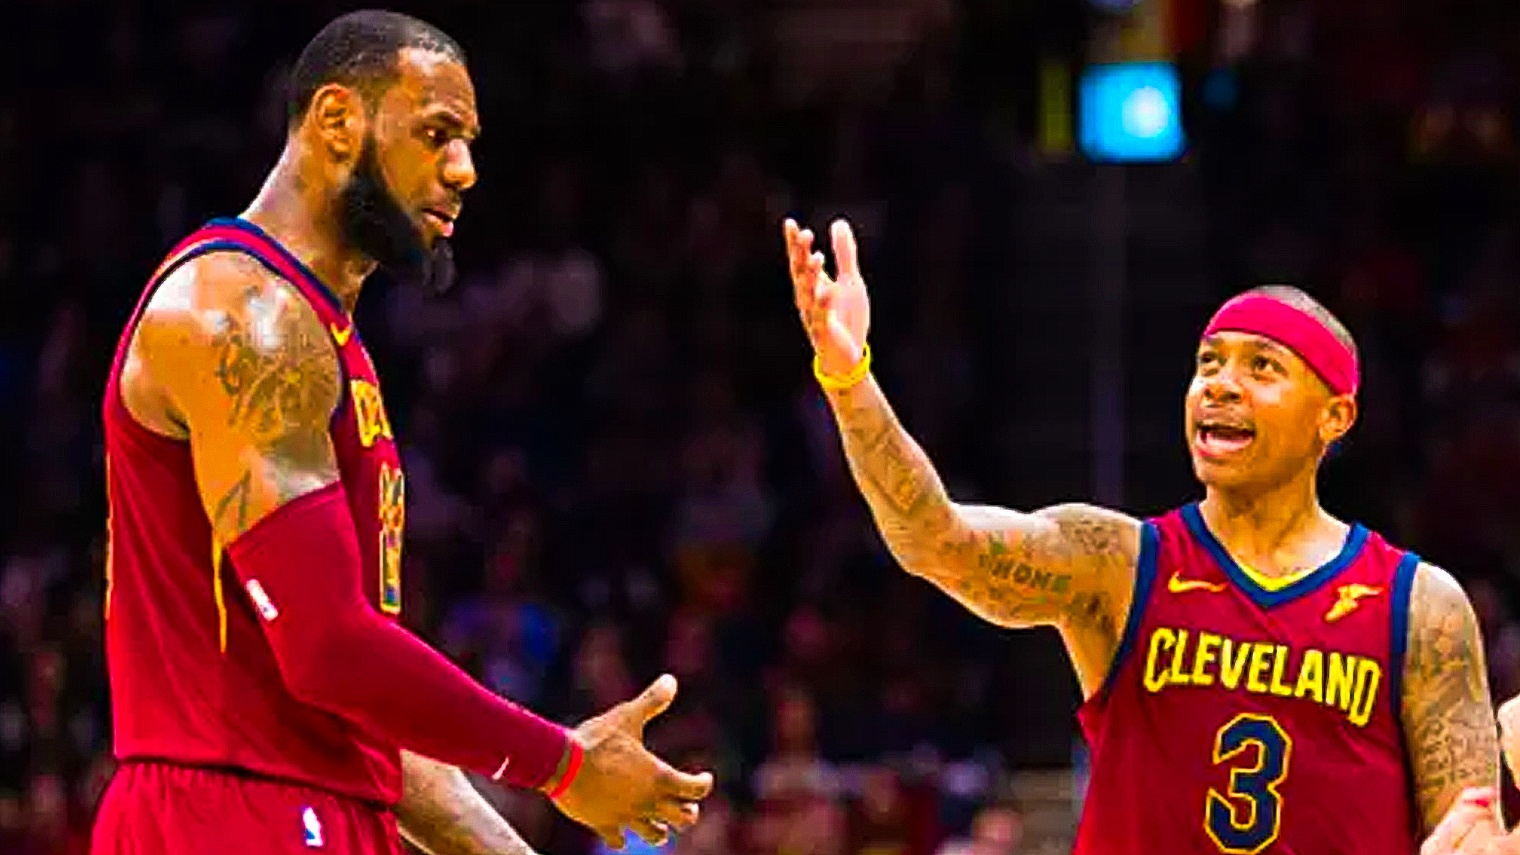 Bickering Cavs blown apart in National Basketball Association